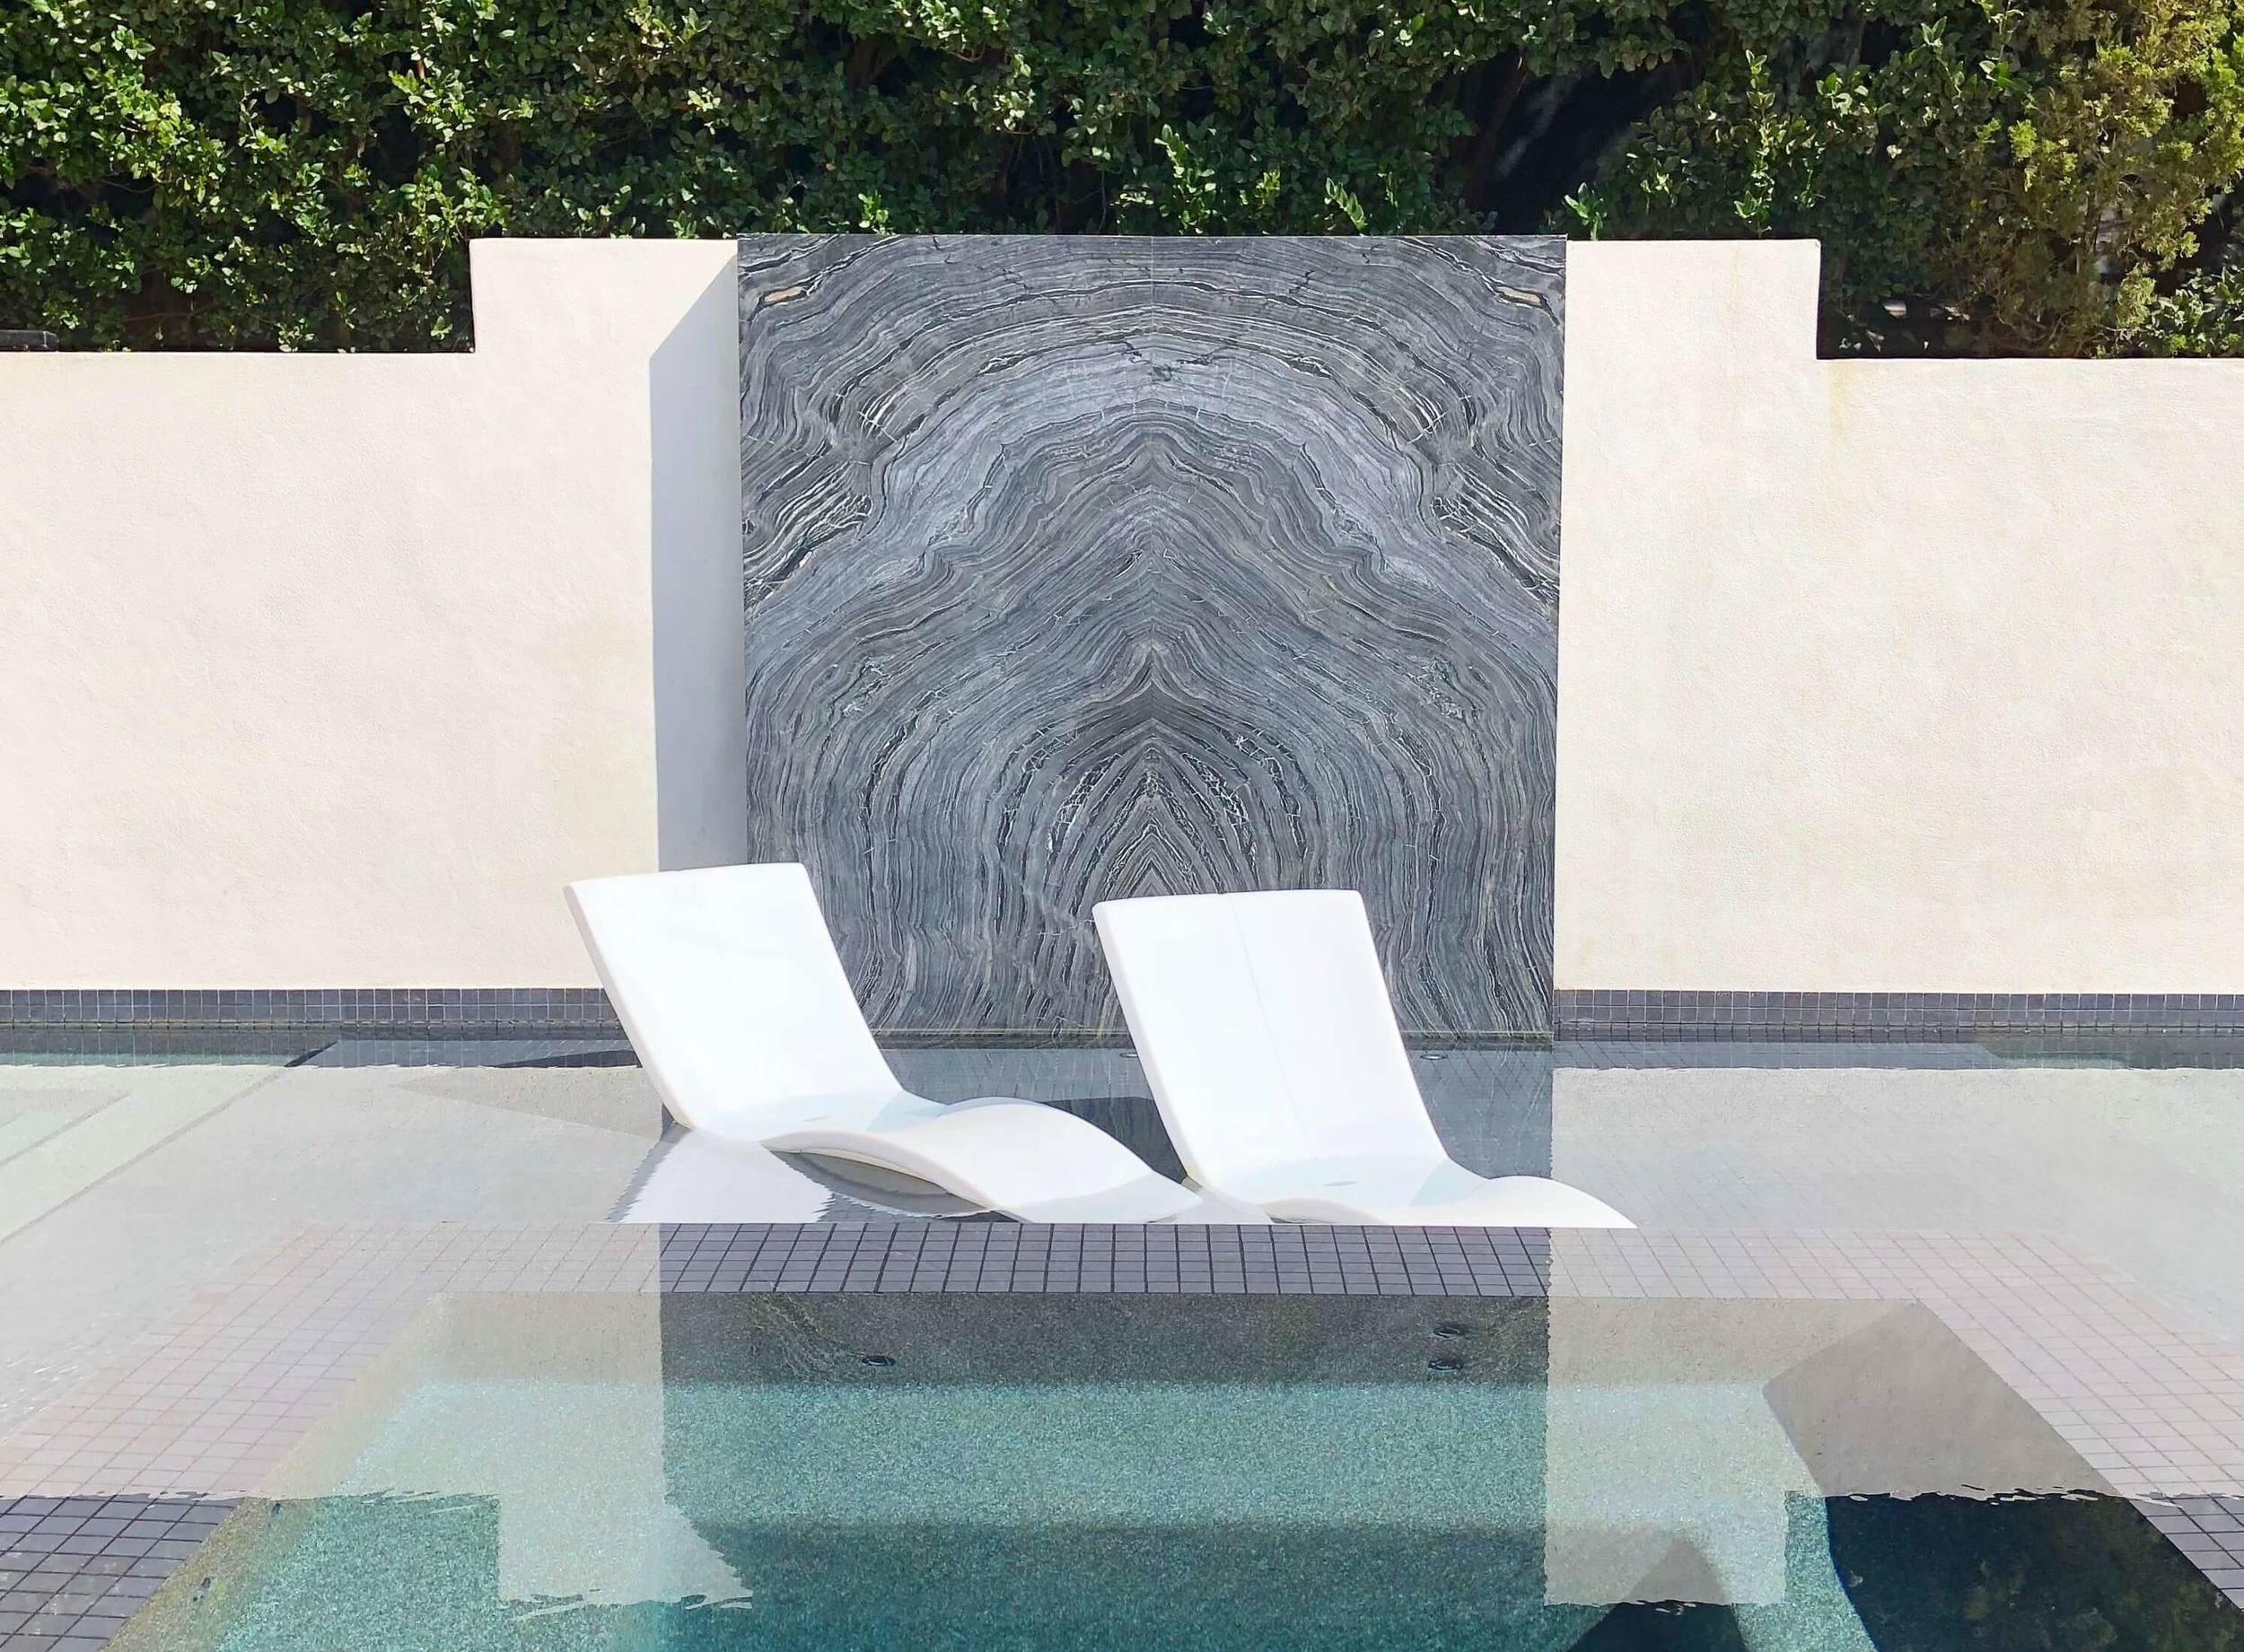 These pool ledge loungers are linked below, seen at the Pasadena Showcase House of Design